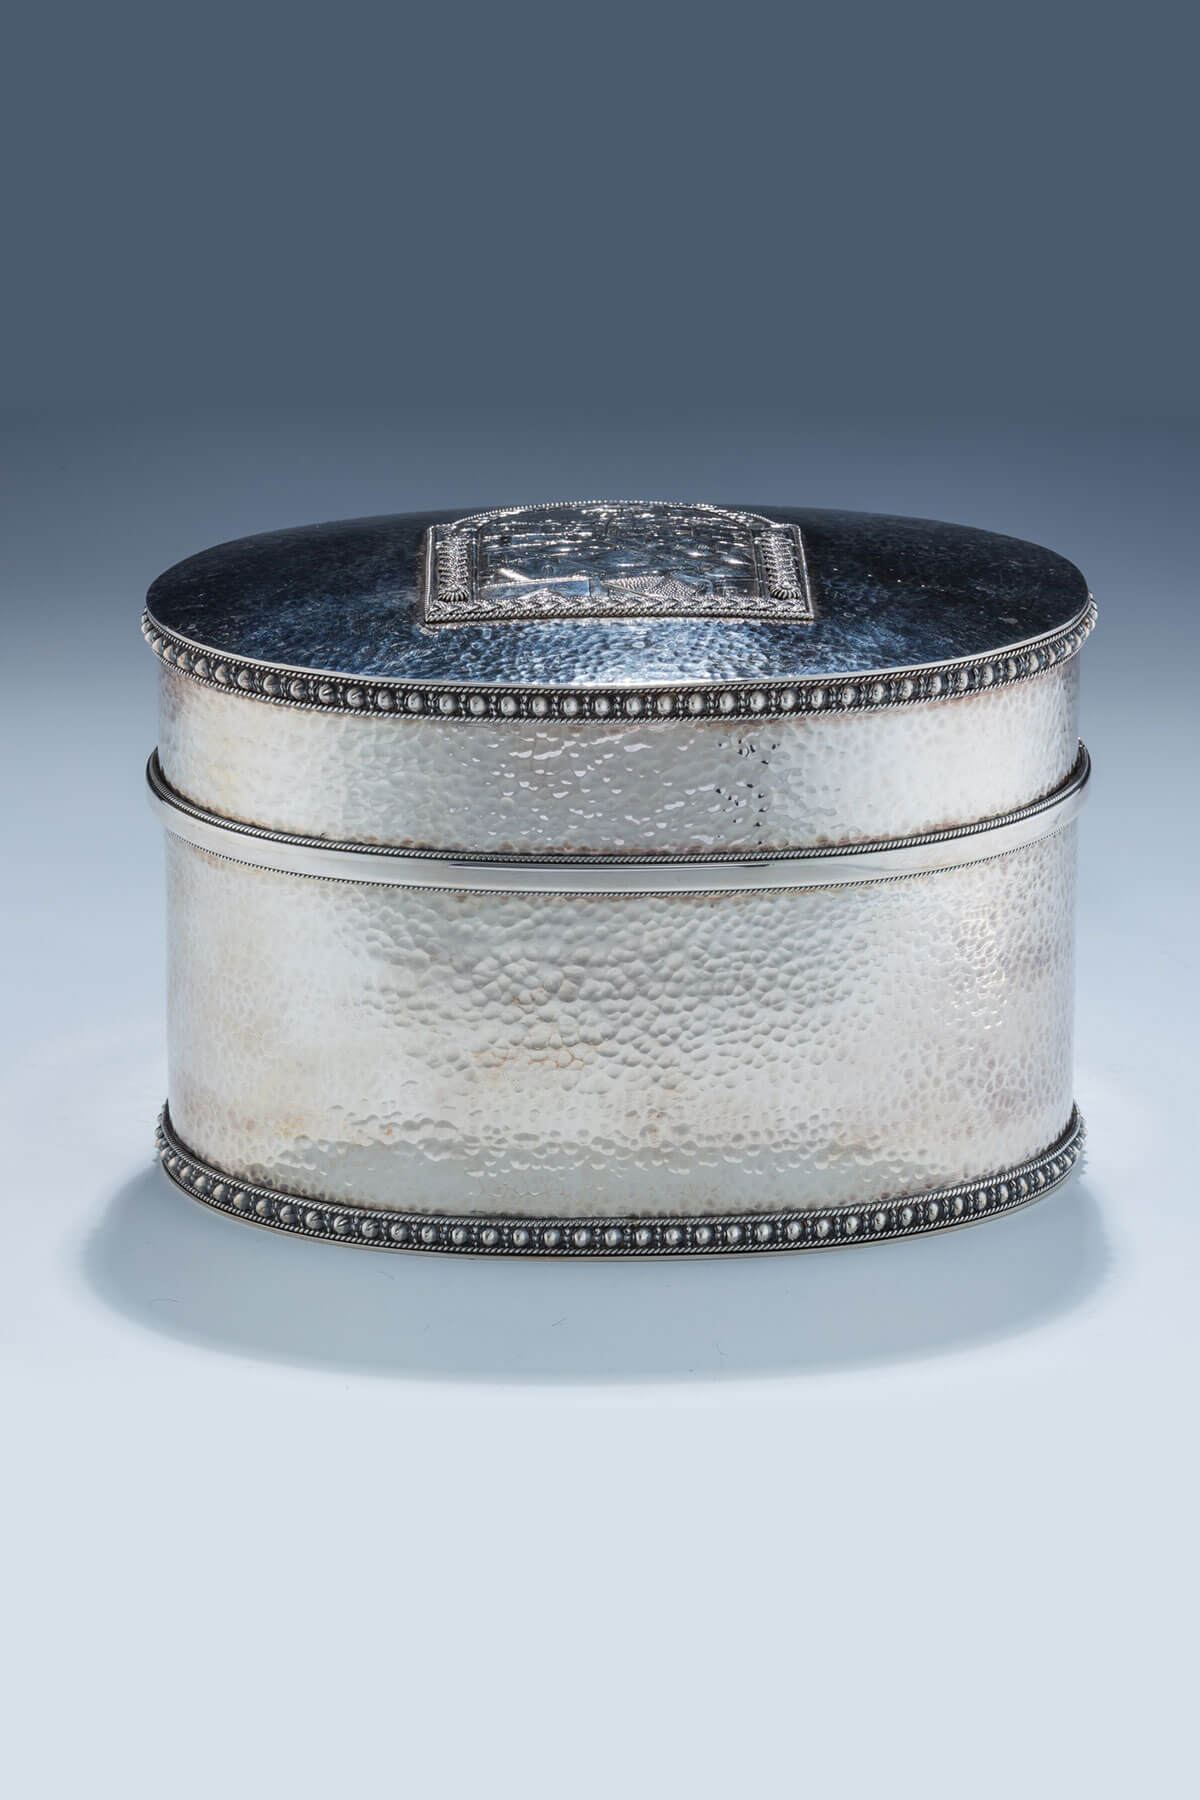 158. A Sterling Silver Etrog Container by Yakov Yemini